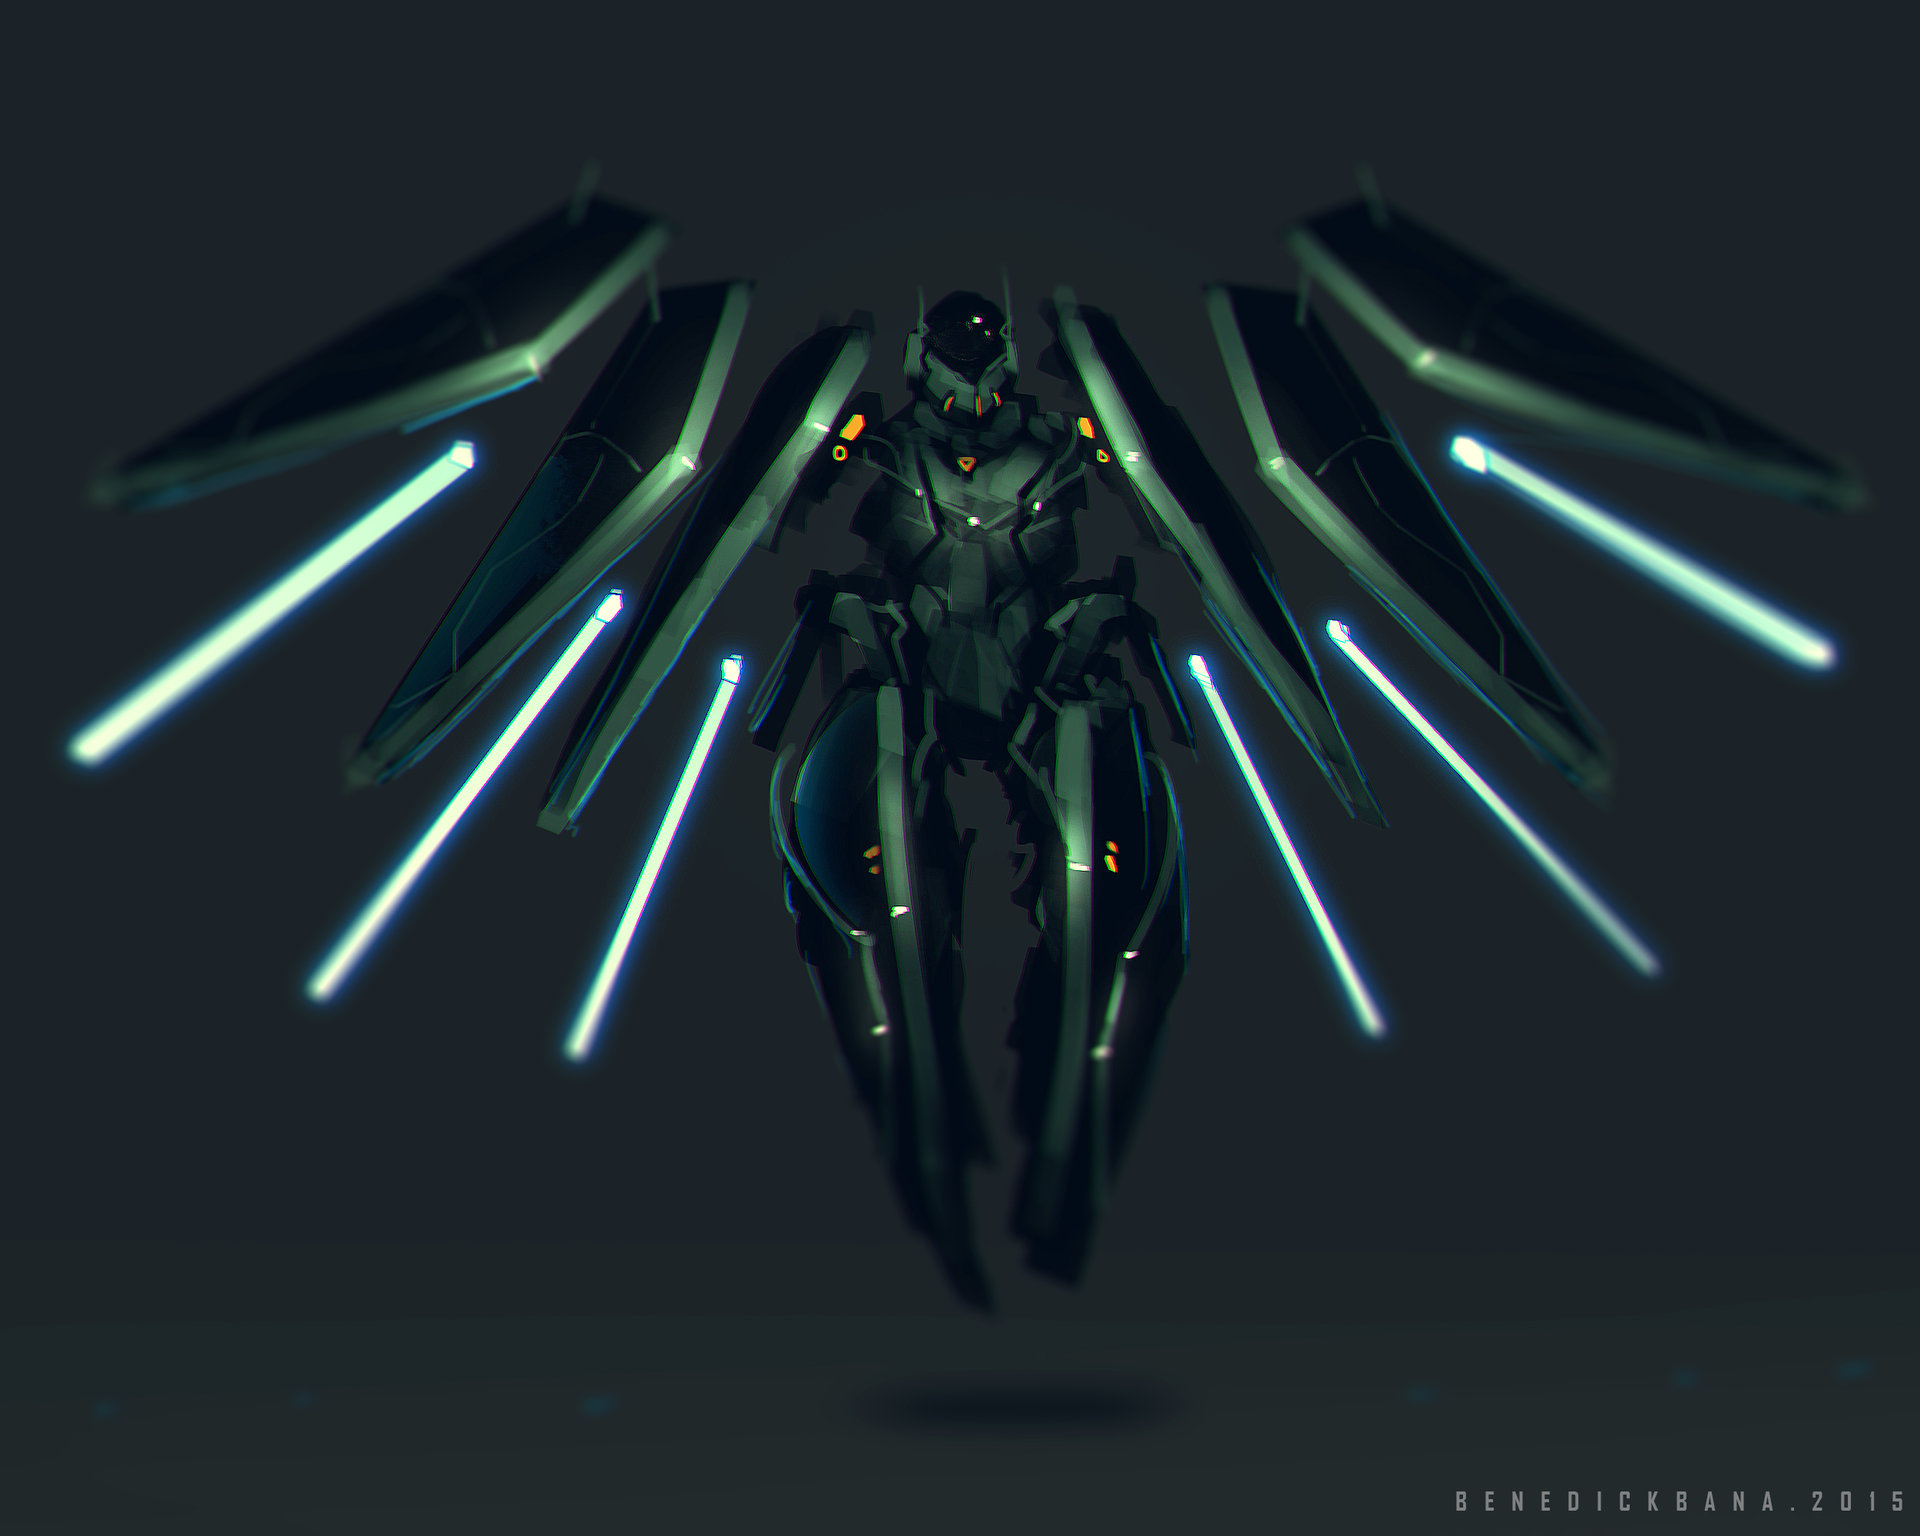 Benedick bana nasa self energy generator mobile mech